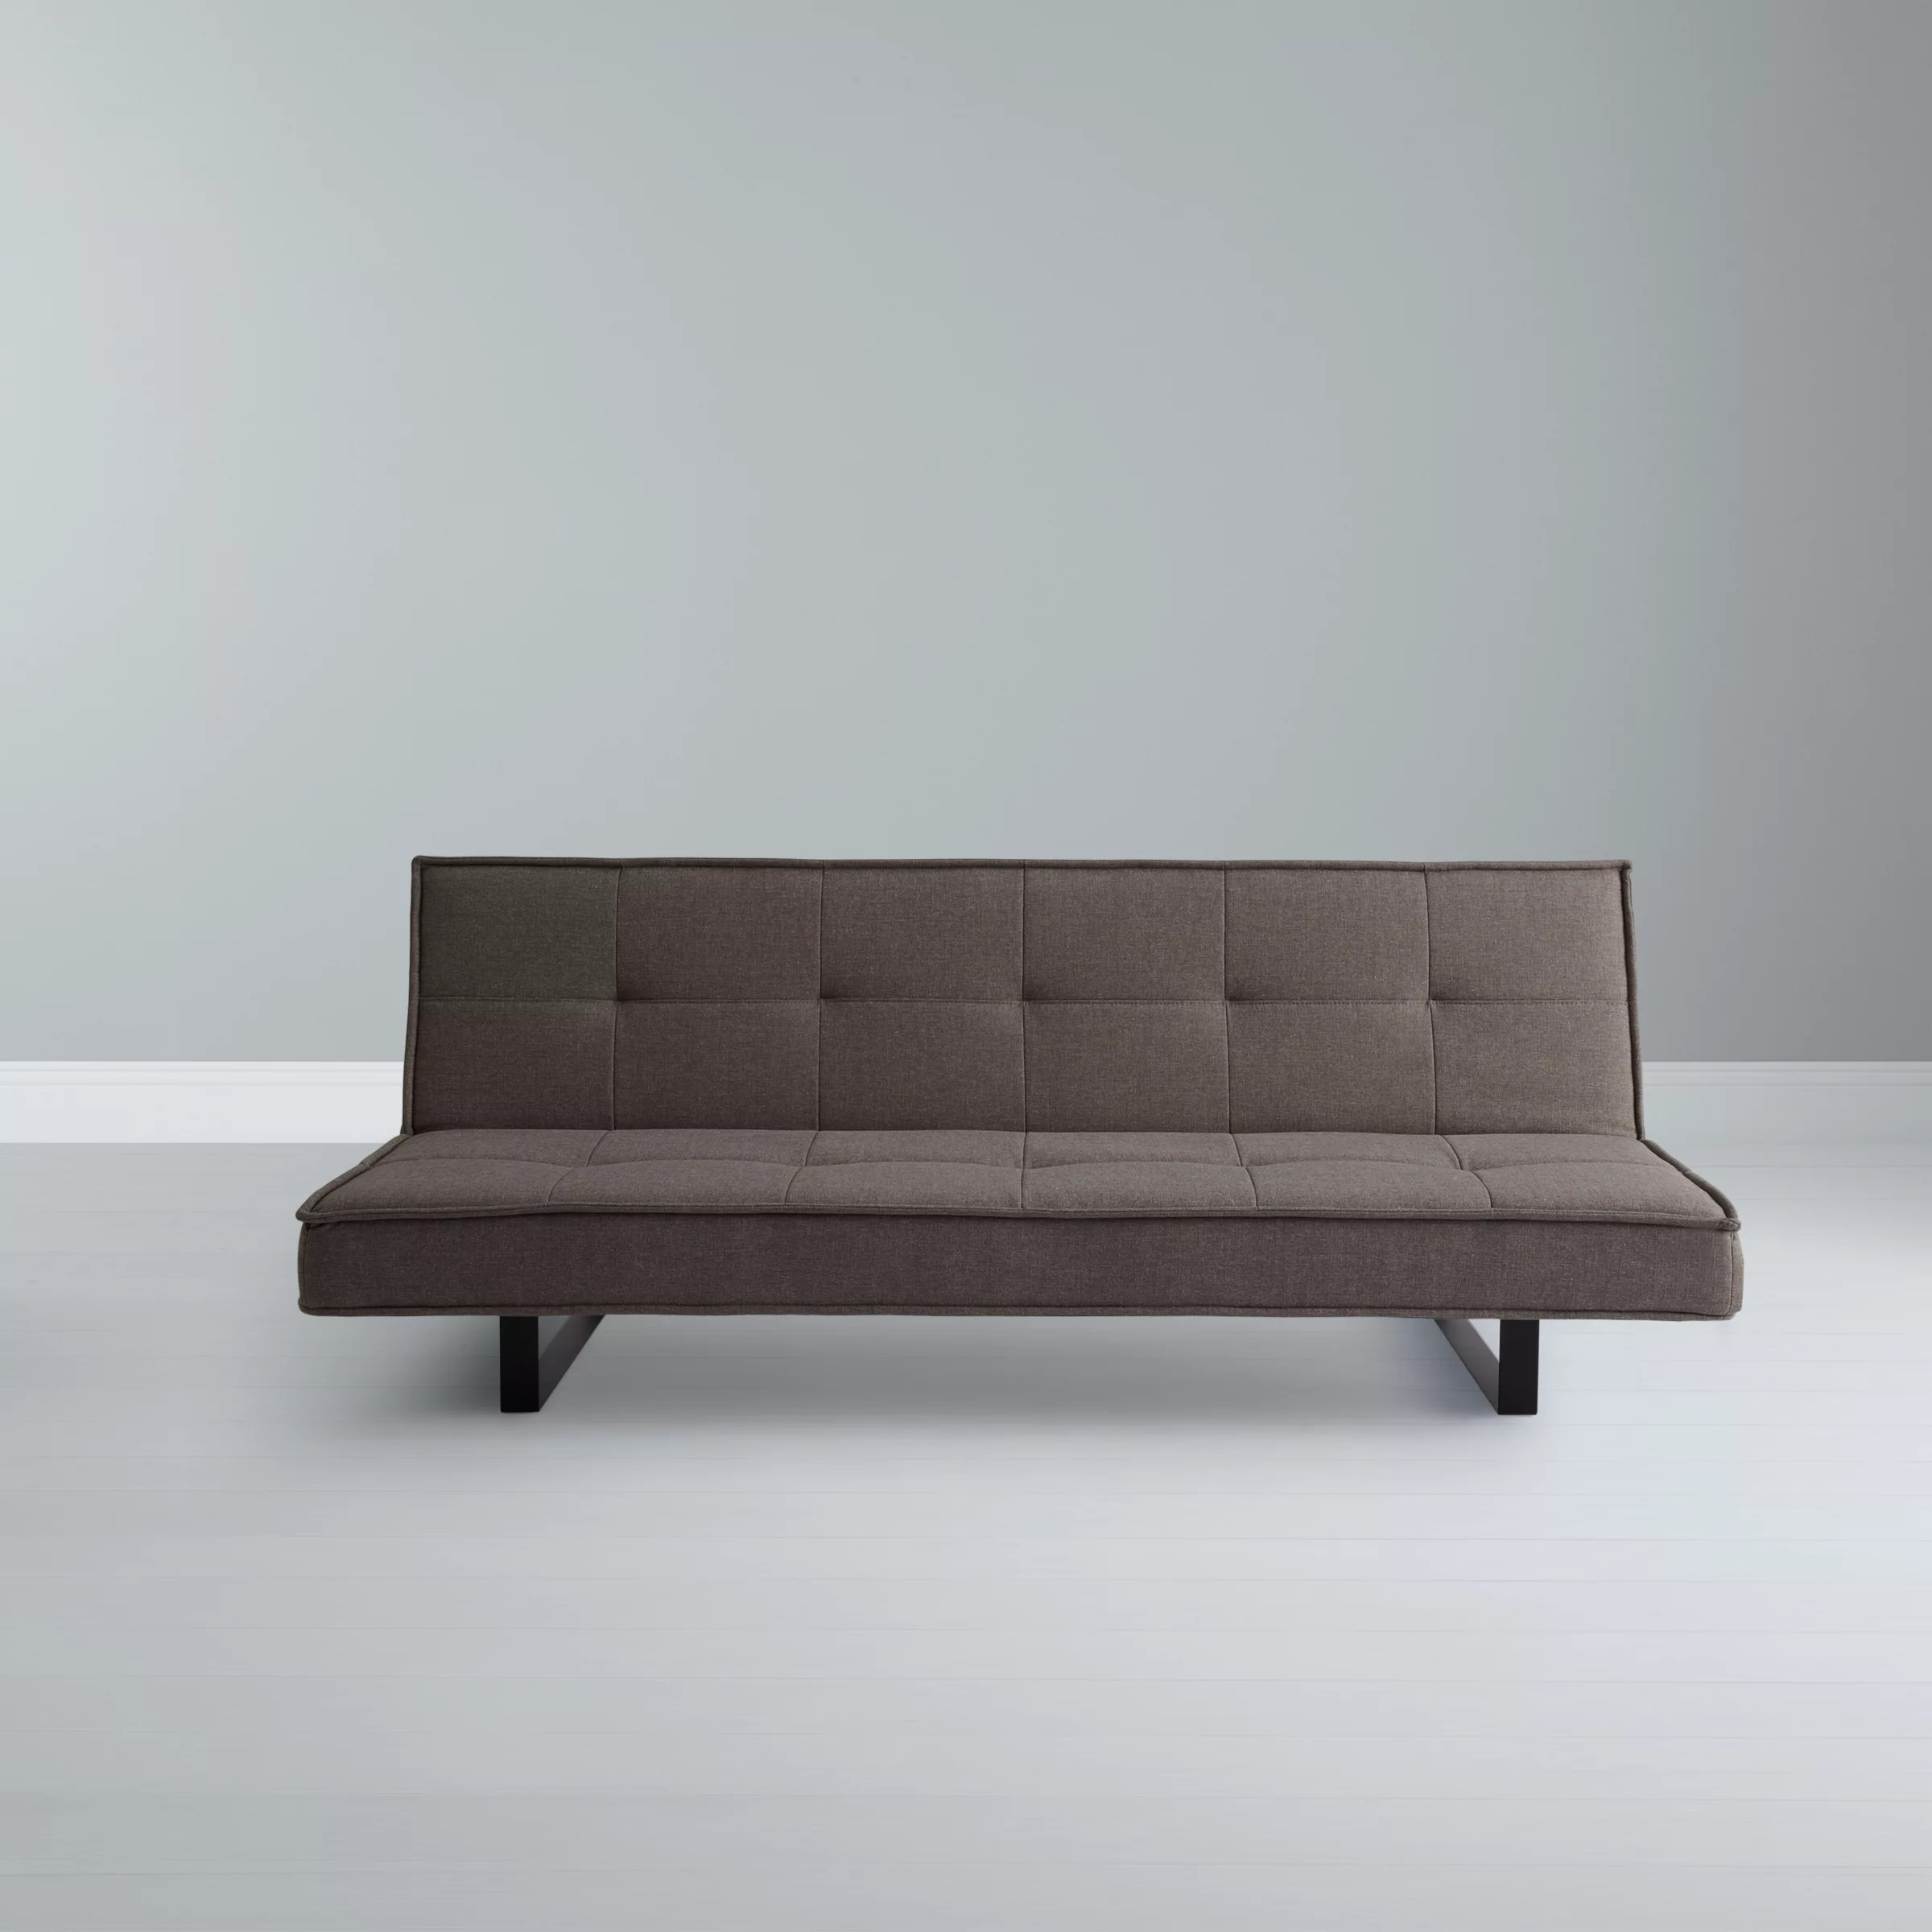 john lewis sofa bed full size sleeper ikea house by napa at partners buyhouse charcoal online johnlewis com